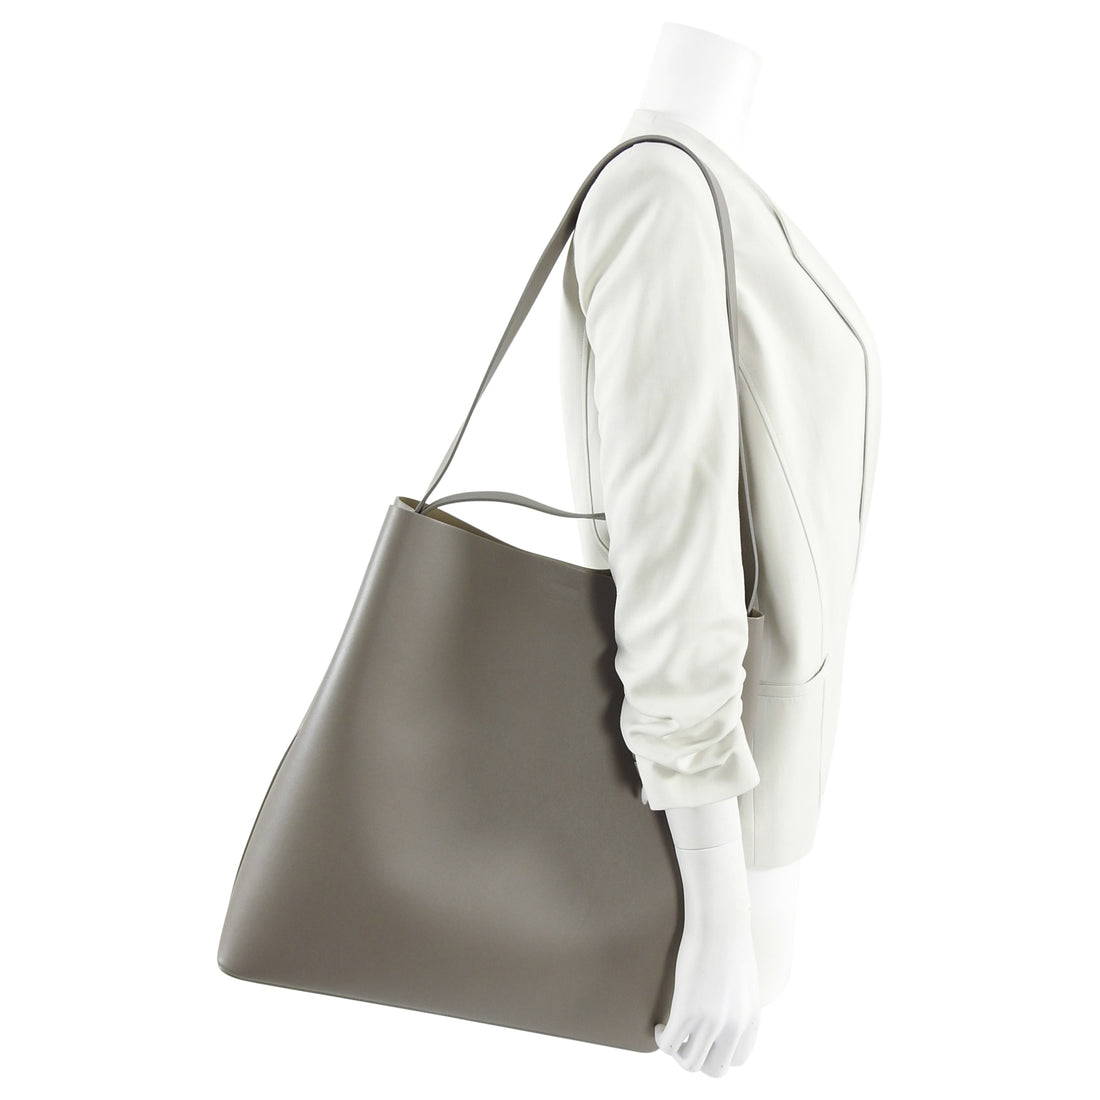 Aesther Ekme Large Grey Leather Sac Tote Bag